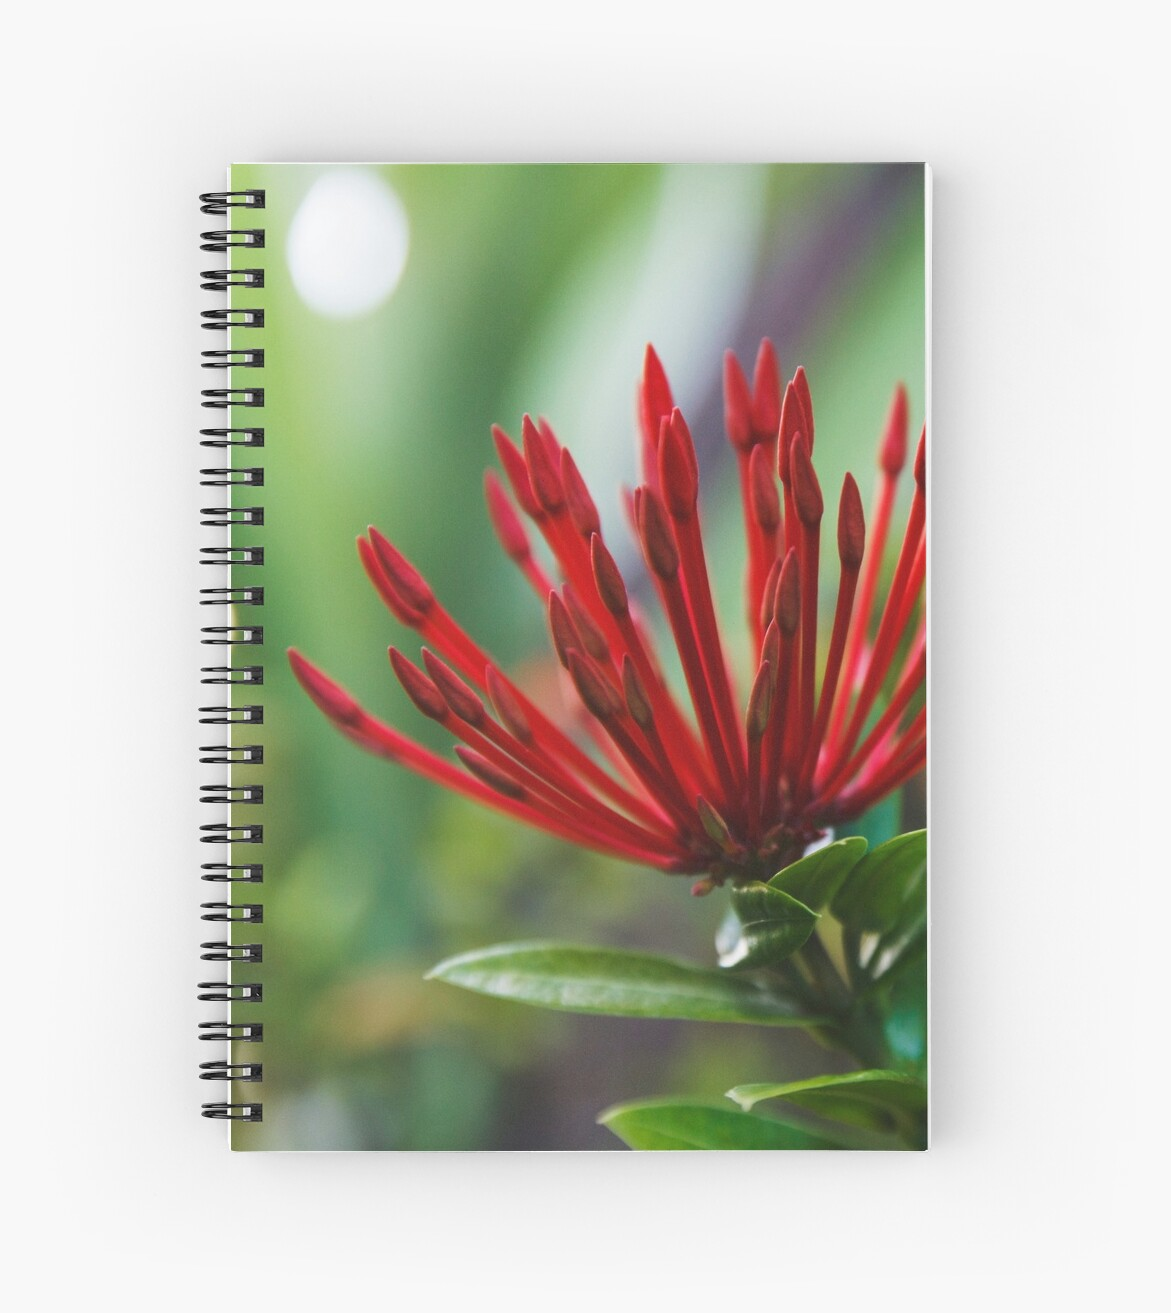 Red Ixora Flowers by DavidLeverson